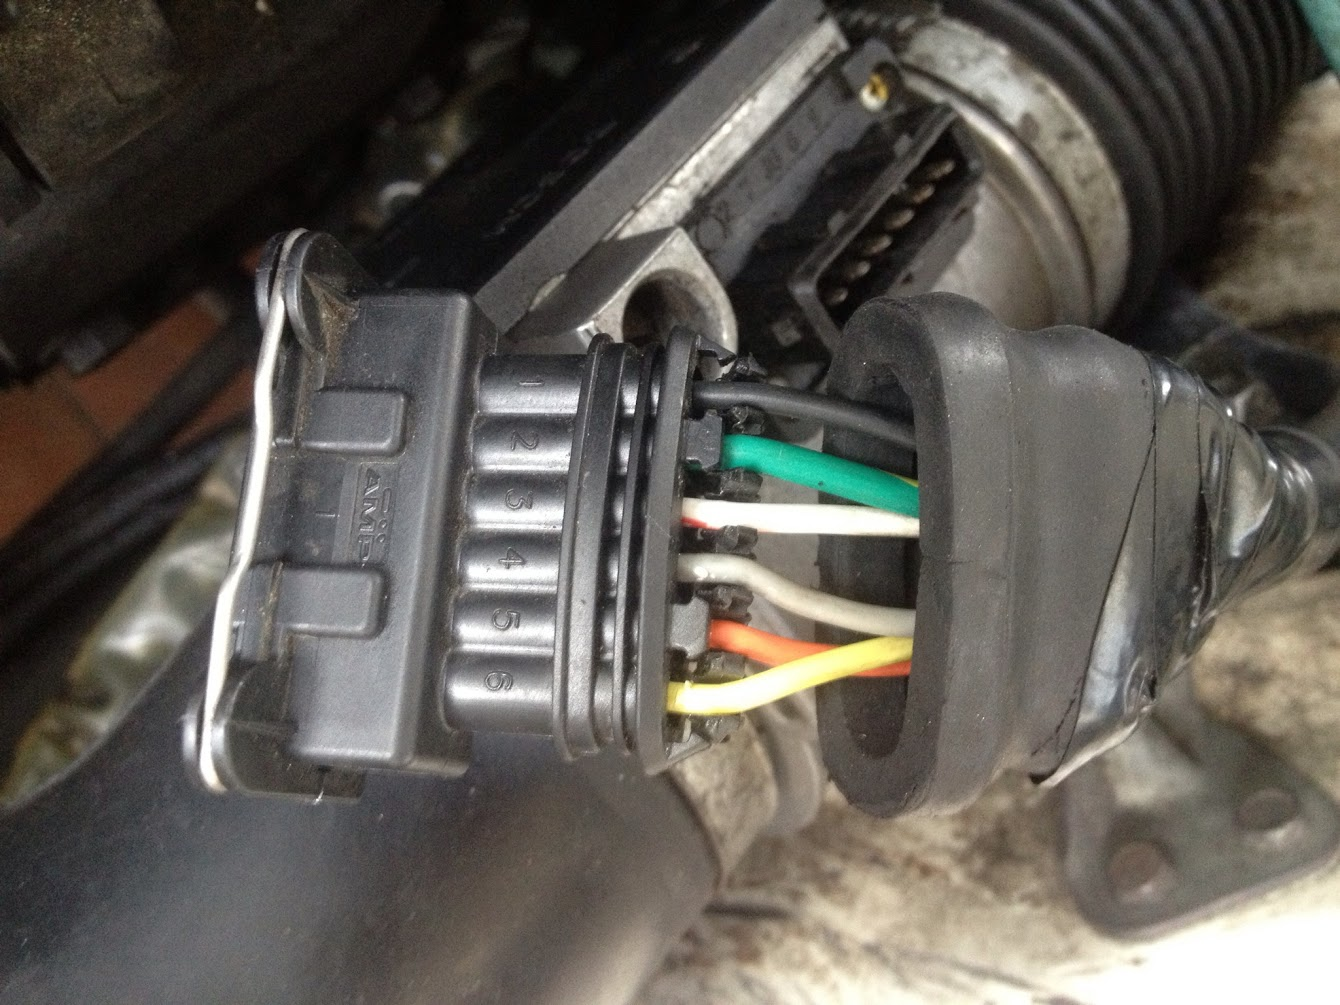 I double-checked the LH2.2 (1986) wiring diagram in my Volvo 240 factory  service manual and verified it matched my junkyard reference connector.